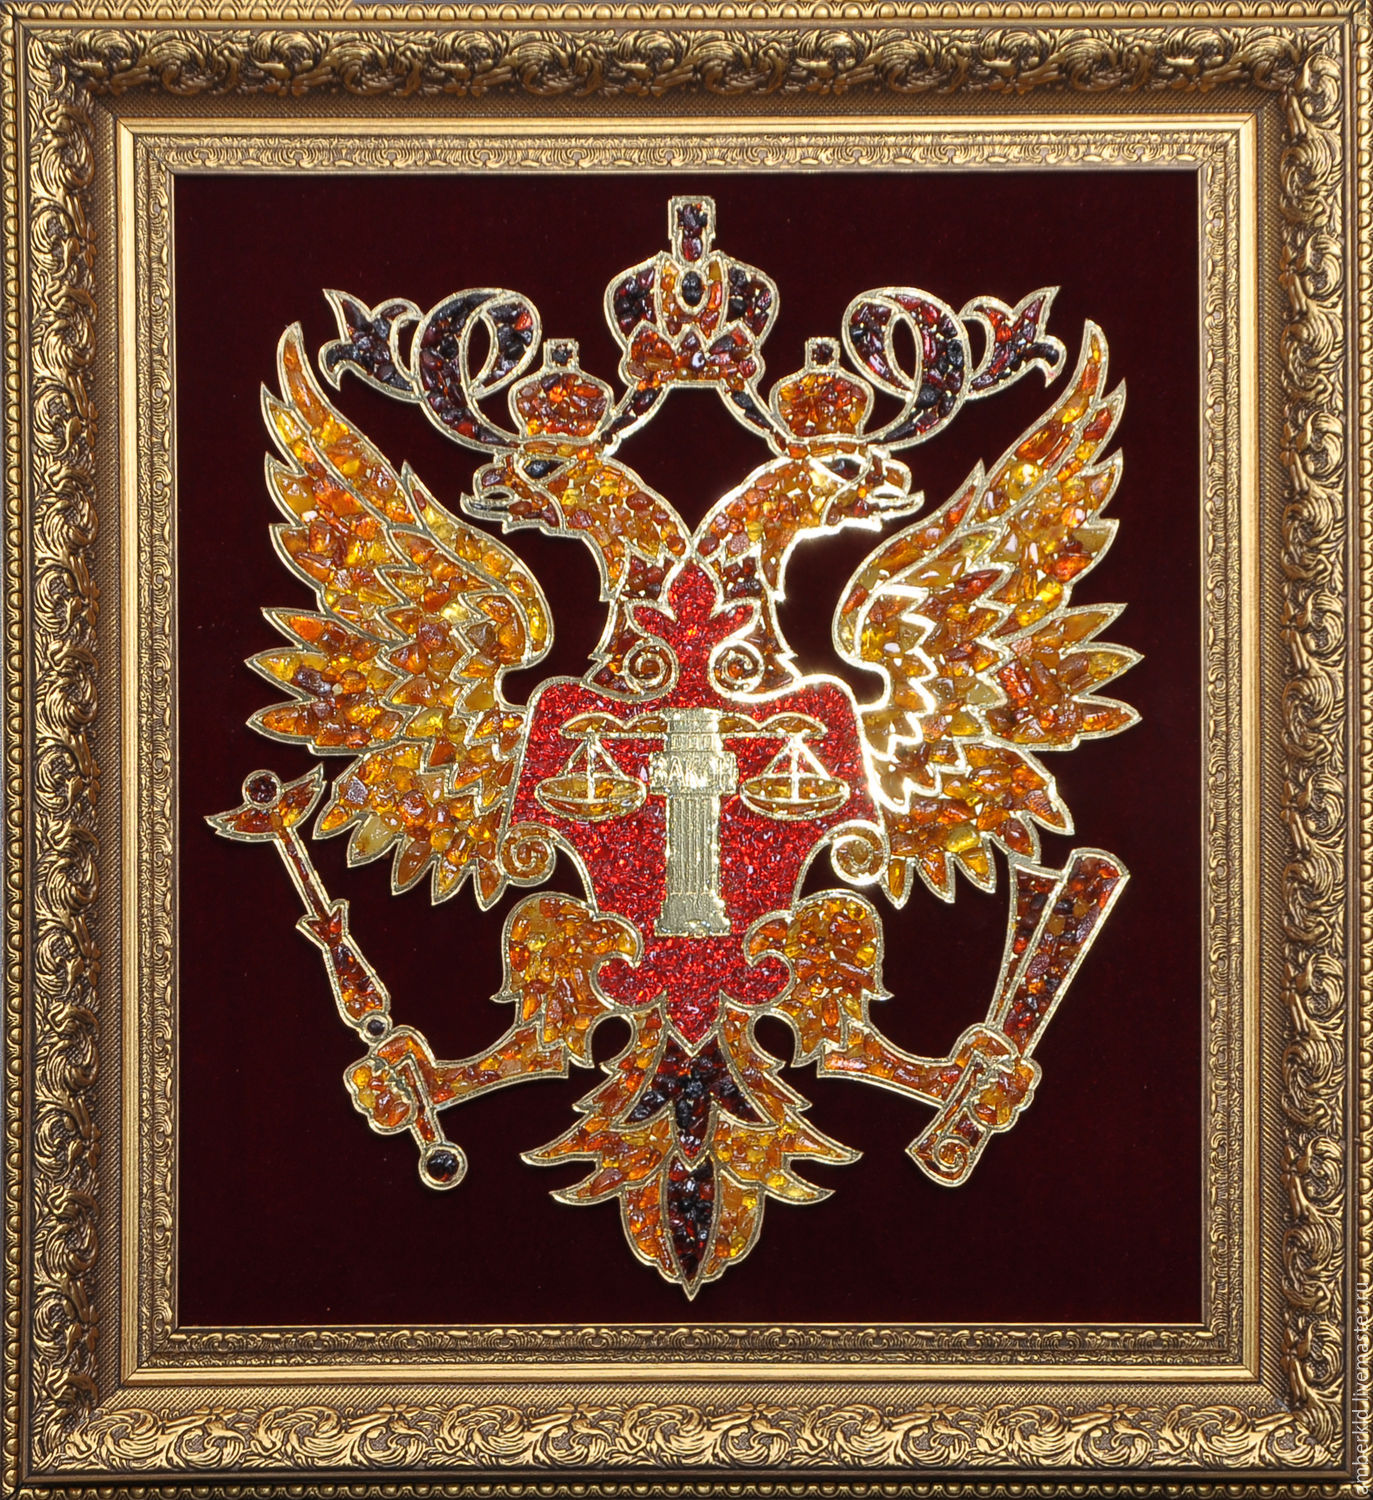 the coat of arms of the judicial department from amber, Fine art photographs, Kaliningrad,  Фото №1